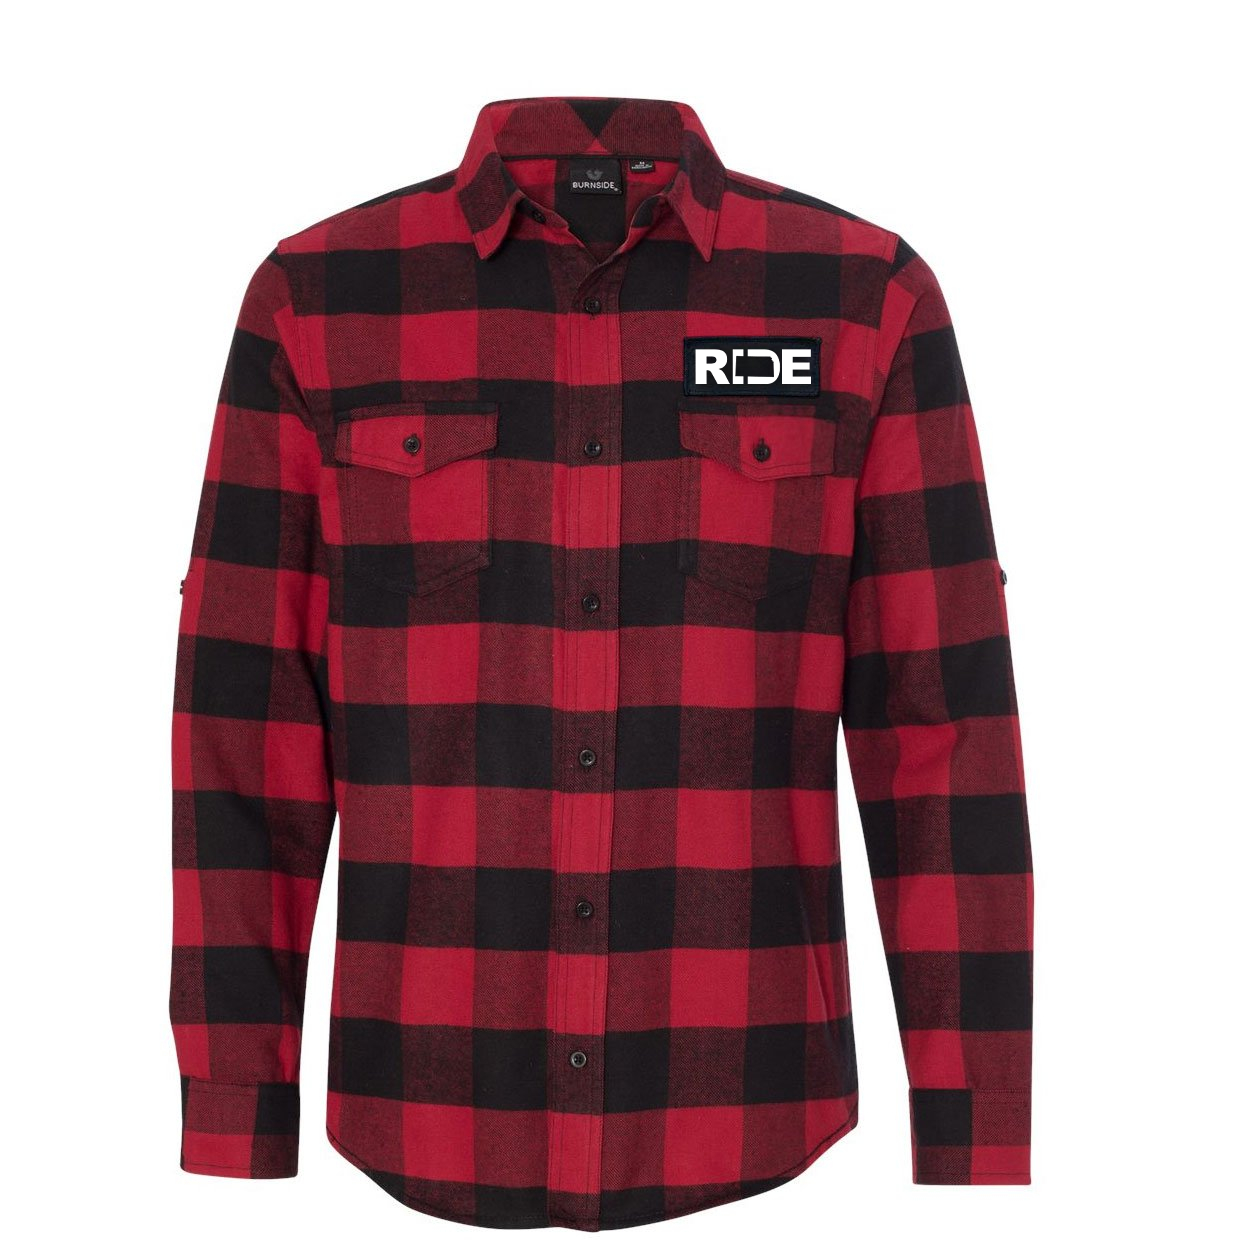 Ride Kansas Classic Unisex Long Sleeve Woven Patch Flannel Shirt Red/Black Buffalo (White Logo)